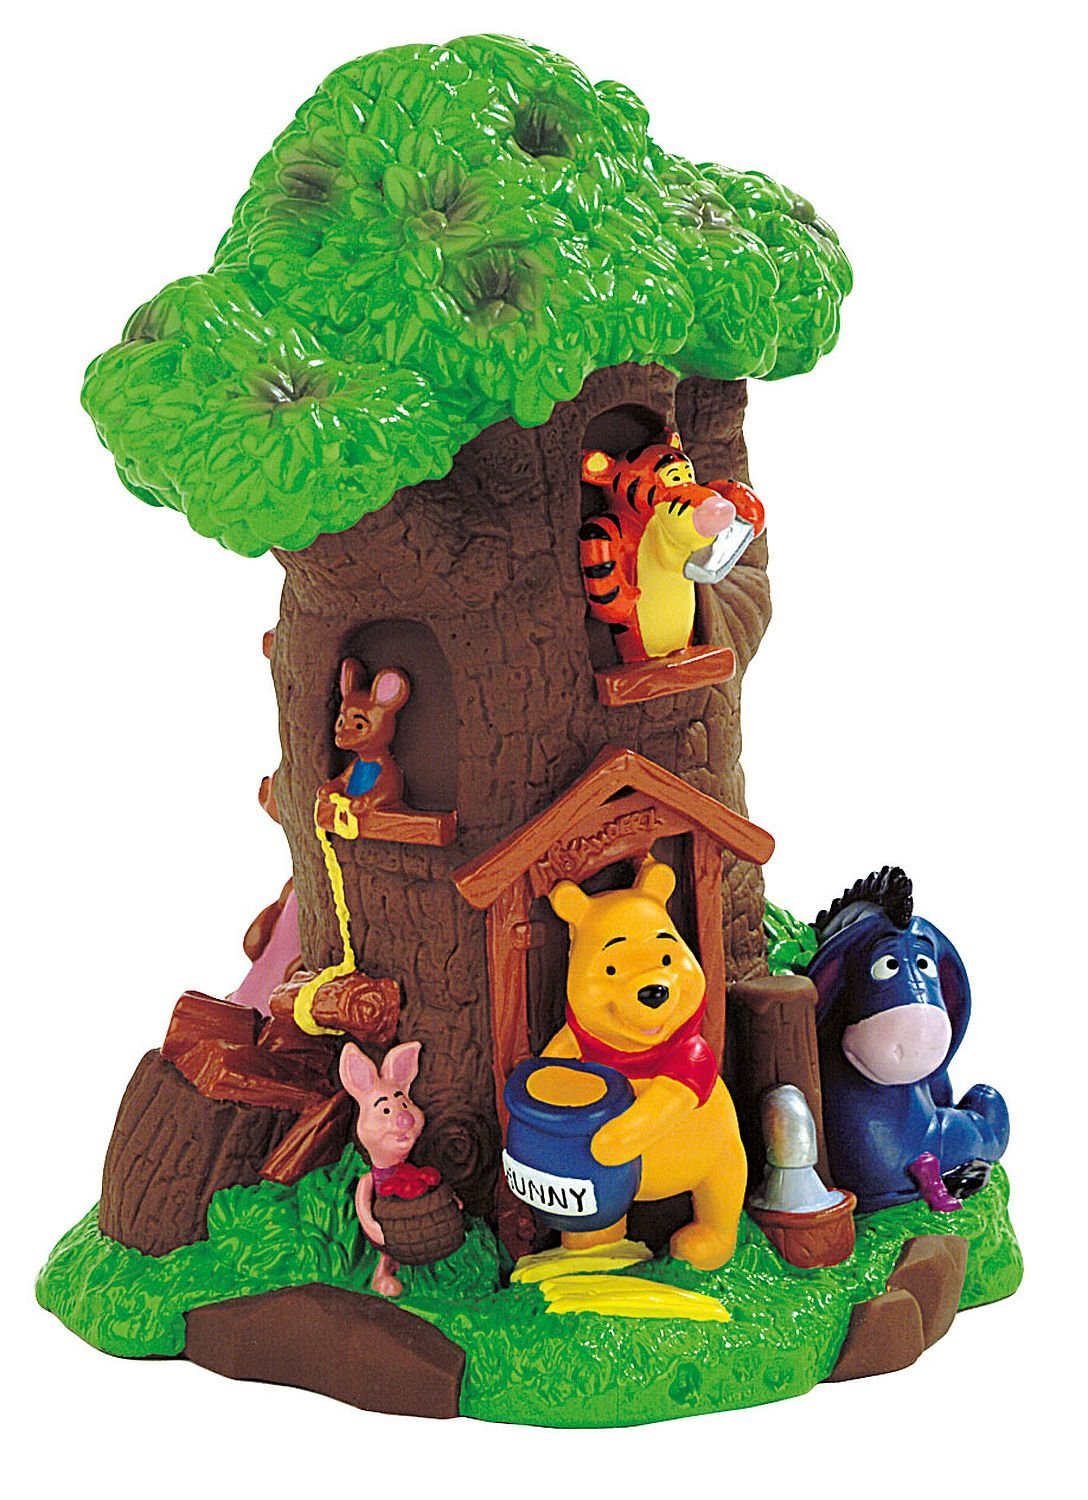 Bullyland Money Bank Winnie The Pooh Treehouse Action Figure by Bullyland